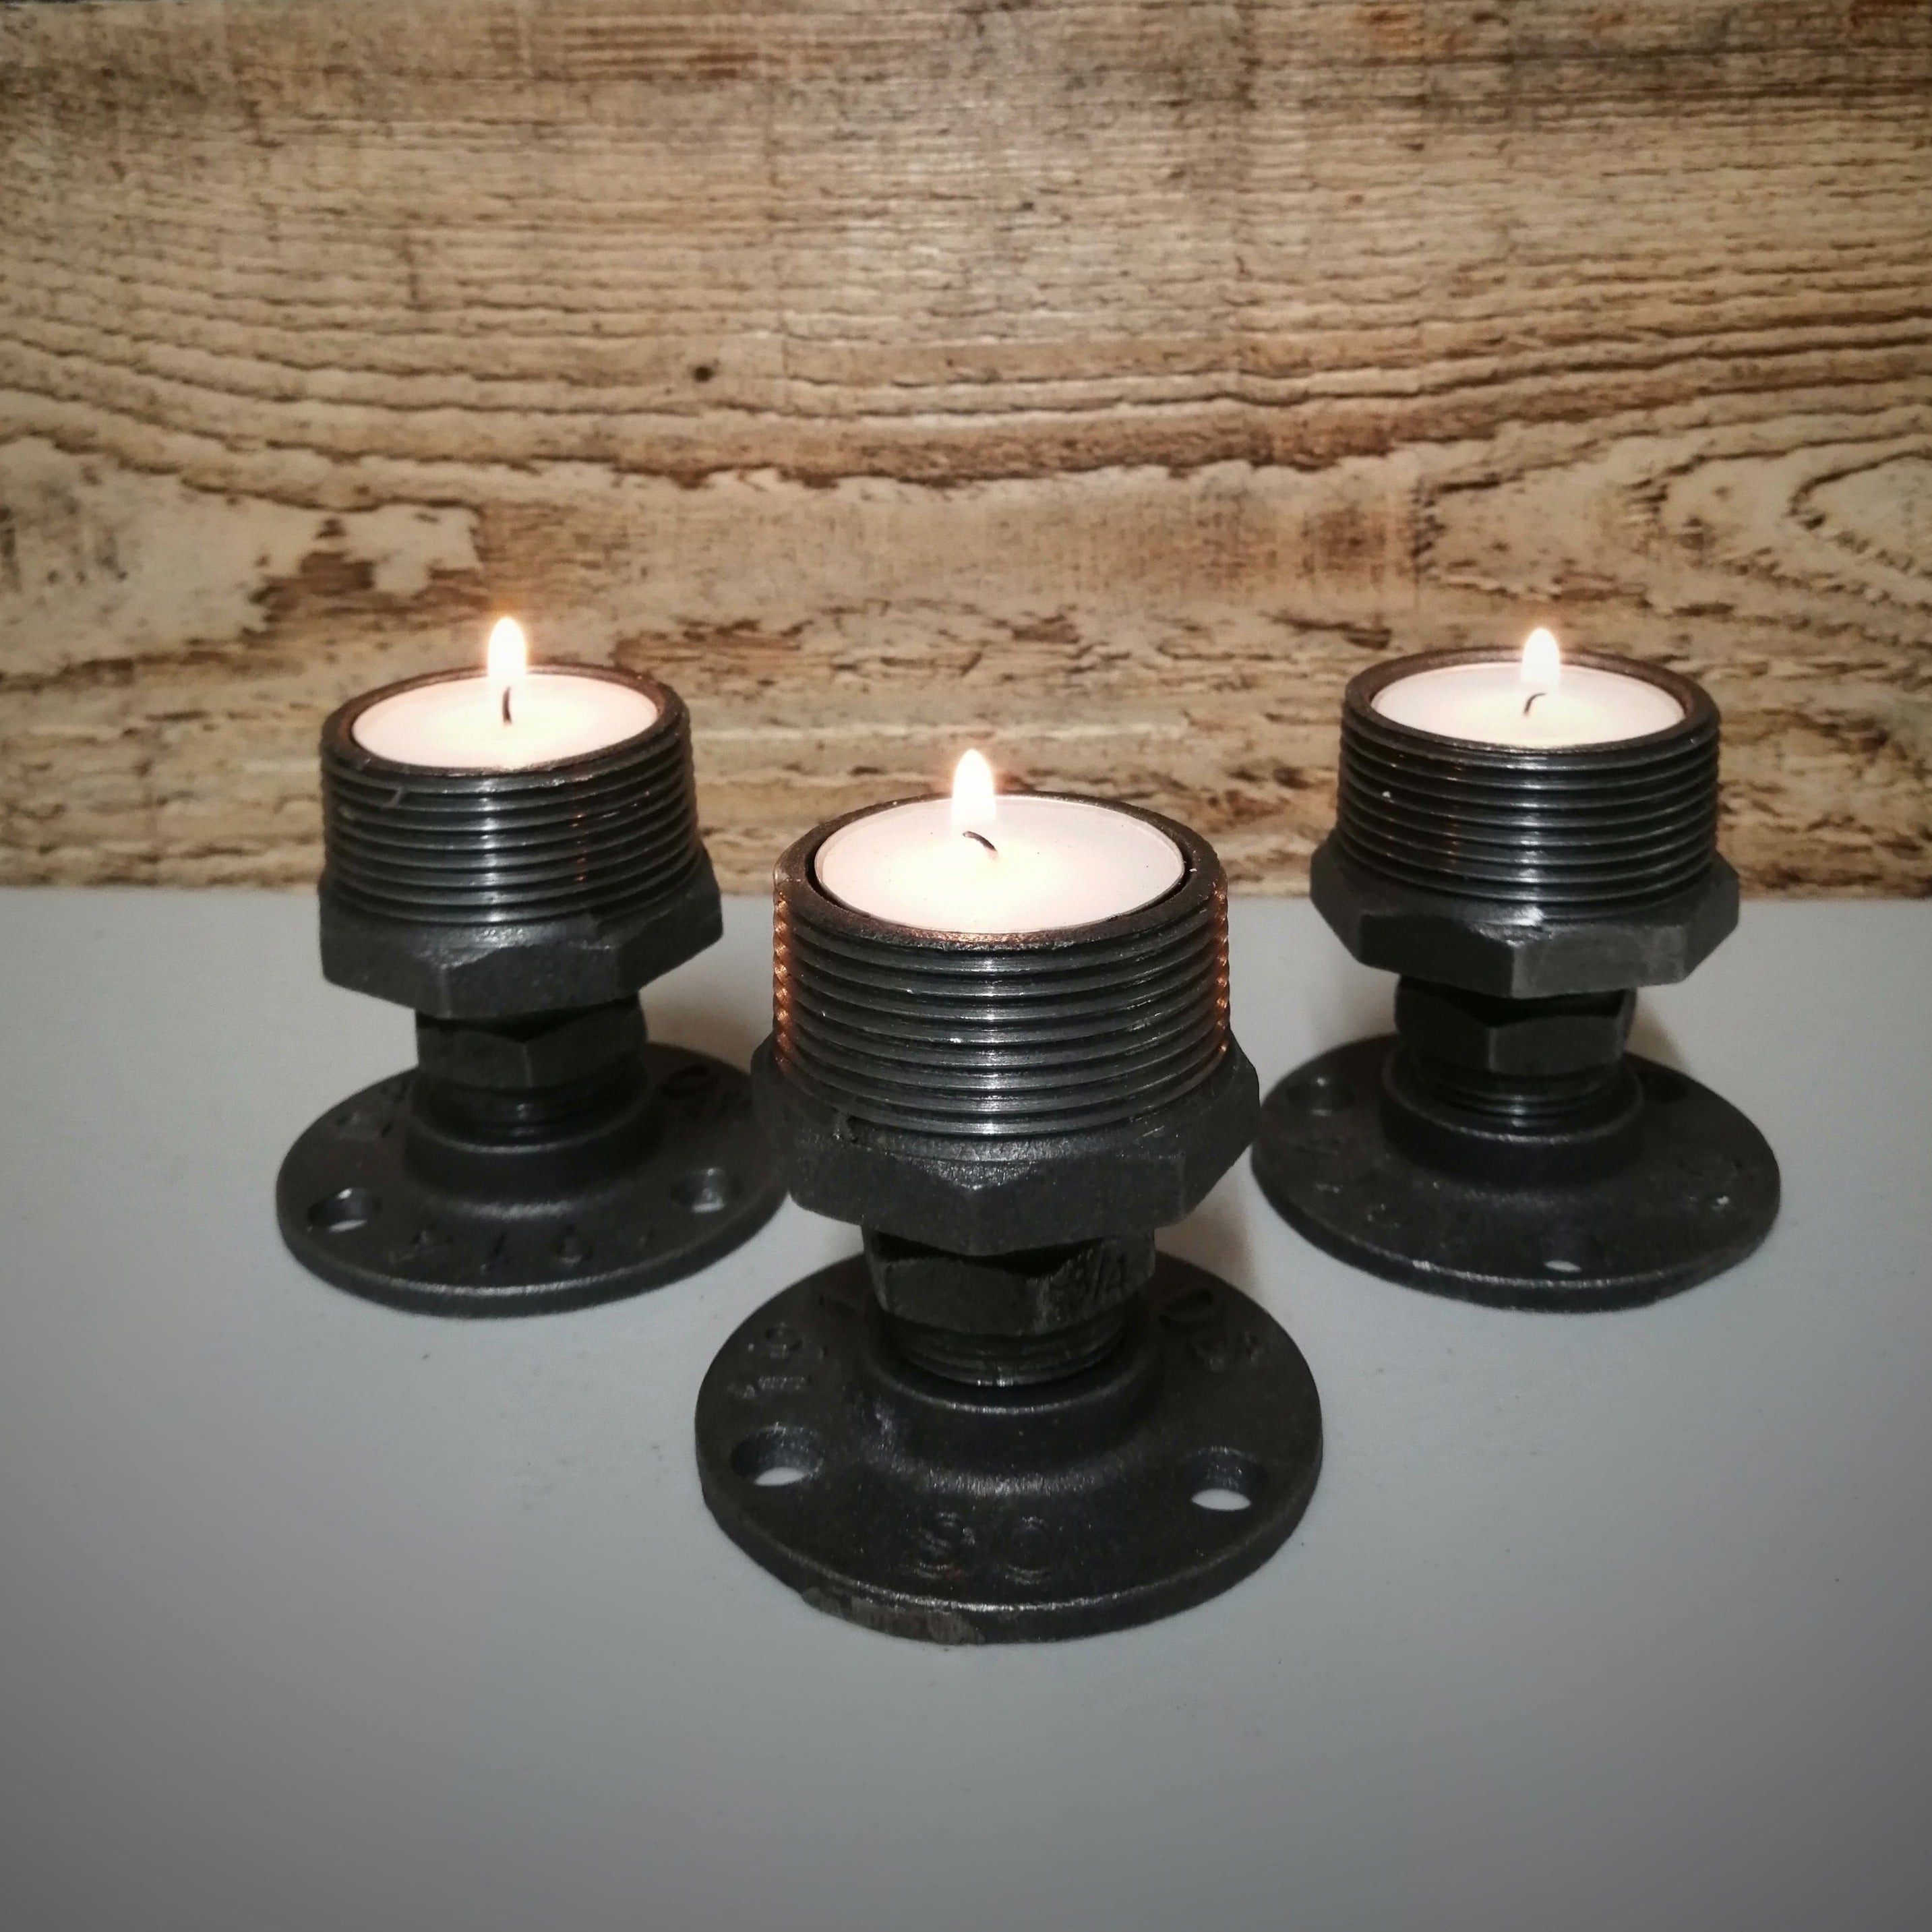 Industrial Style SteamPunk Tea Candle Holders, Set of 3